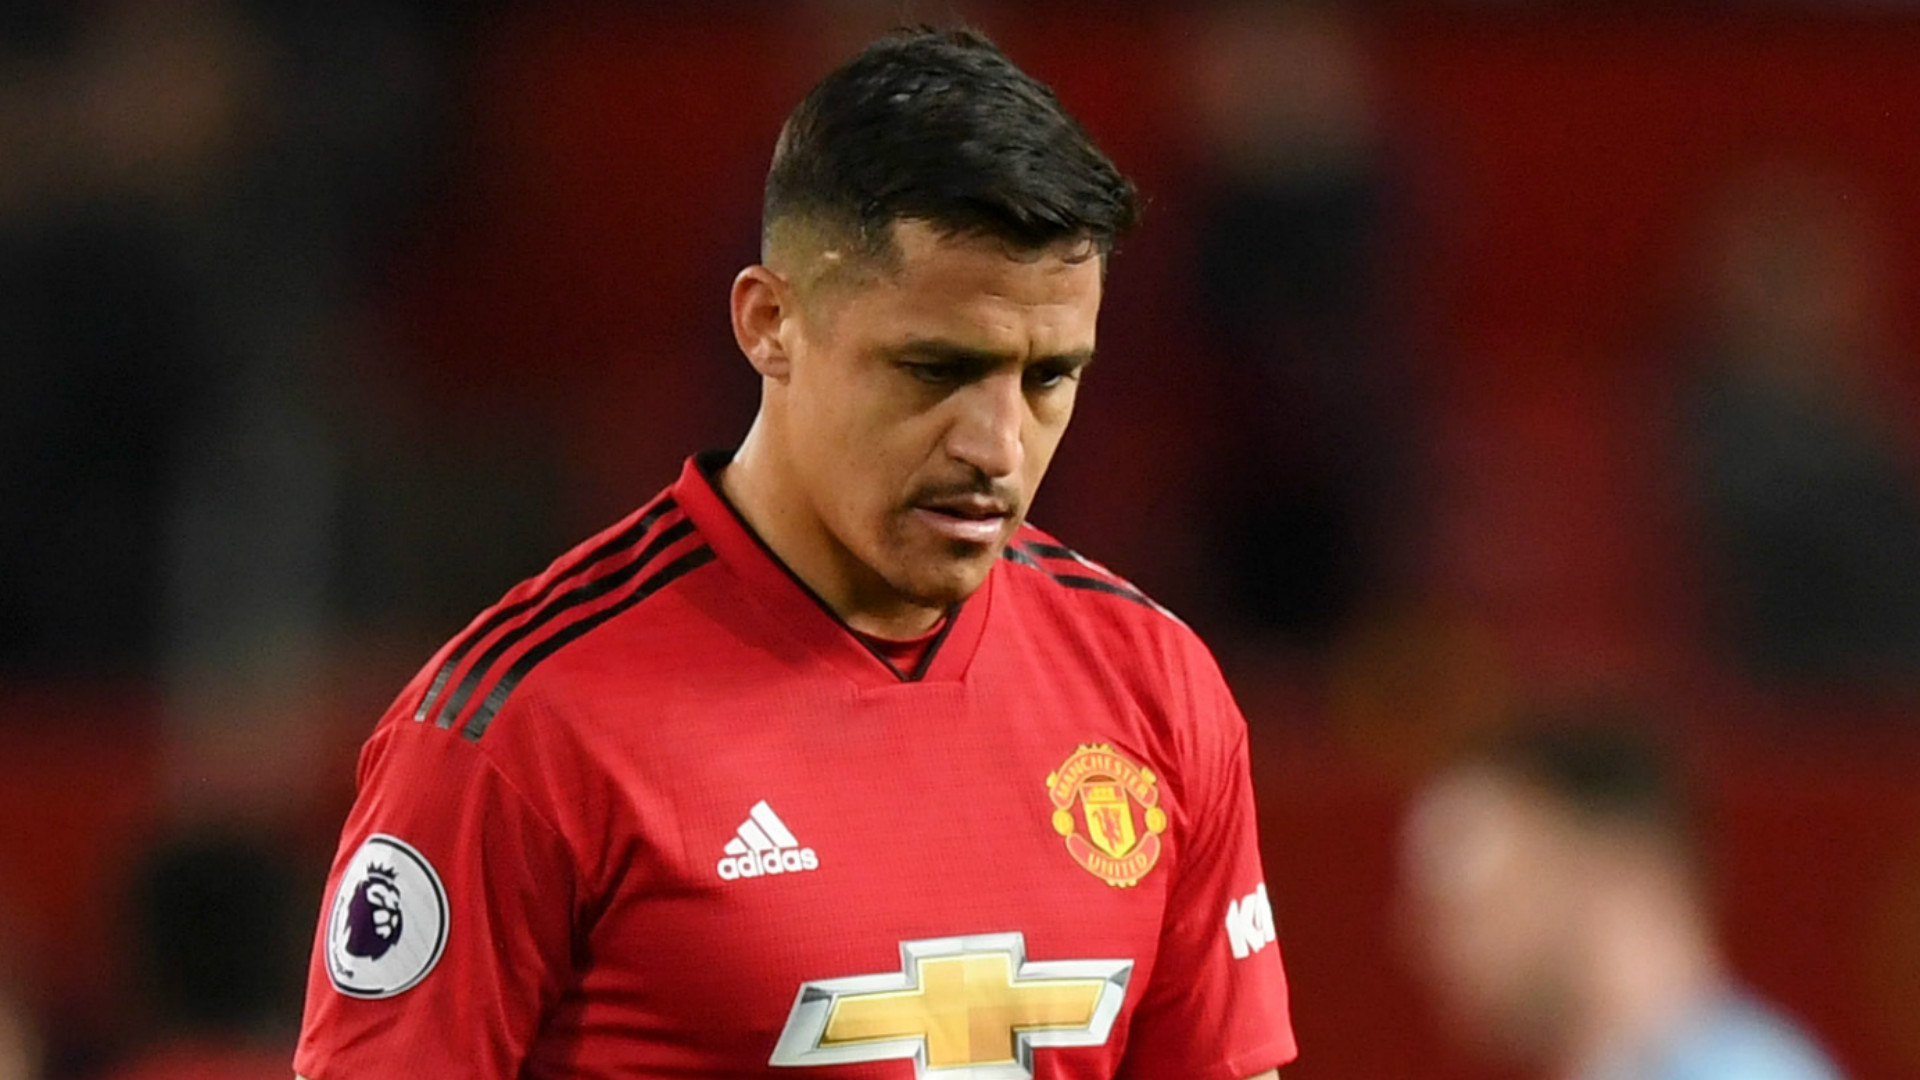 Man United will pay Sh1.7 billion to get rid of Alexis Sanchez